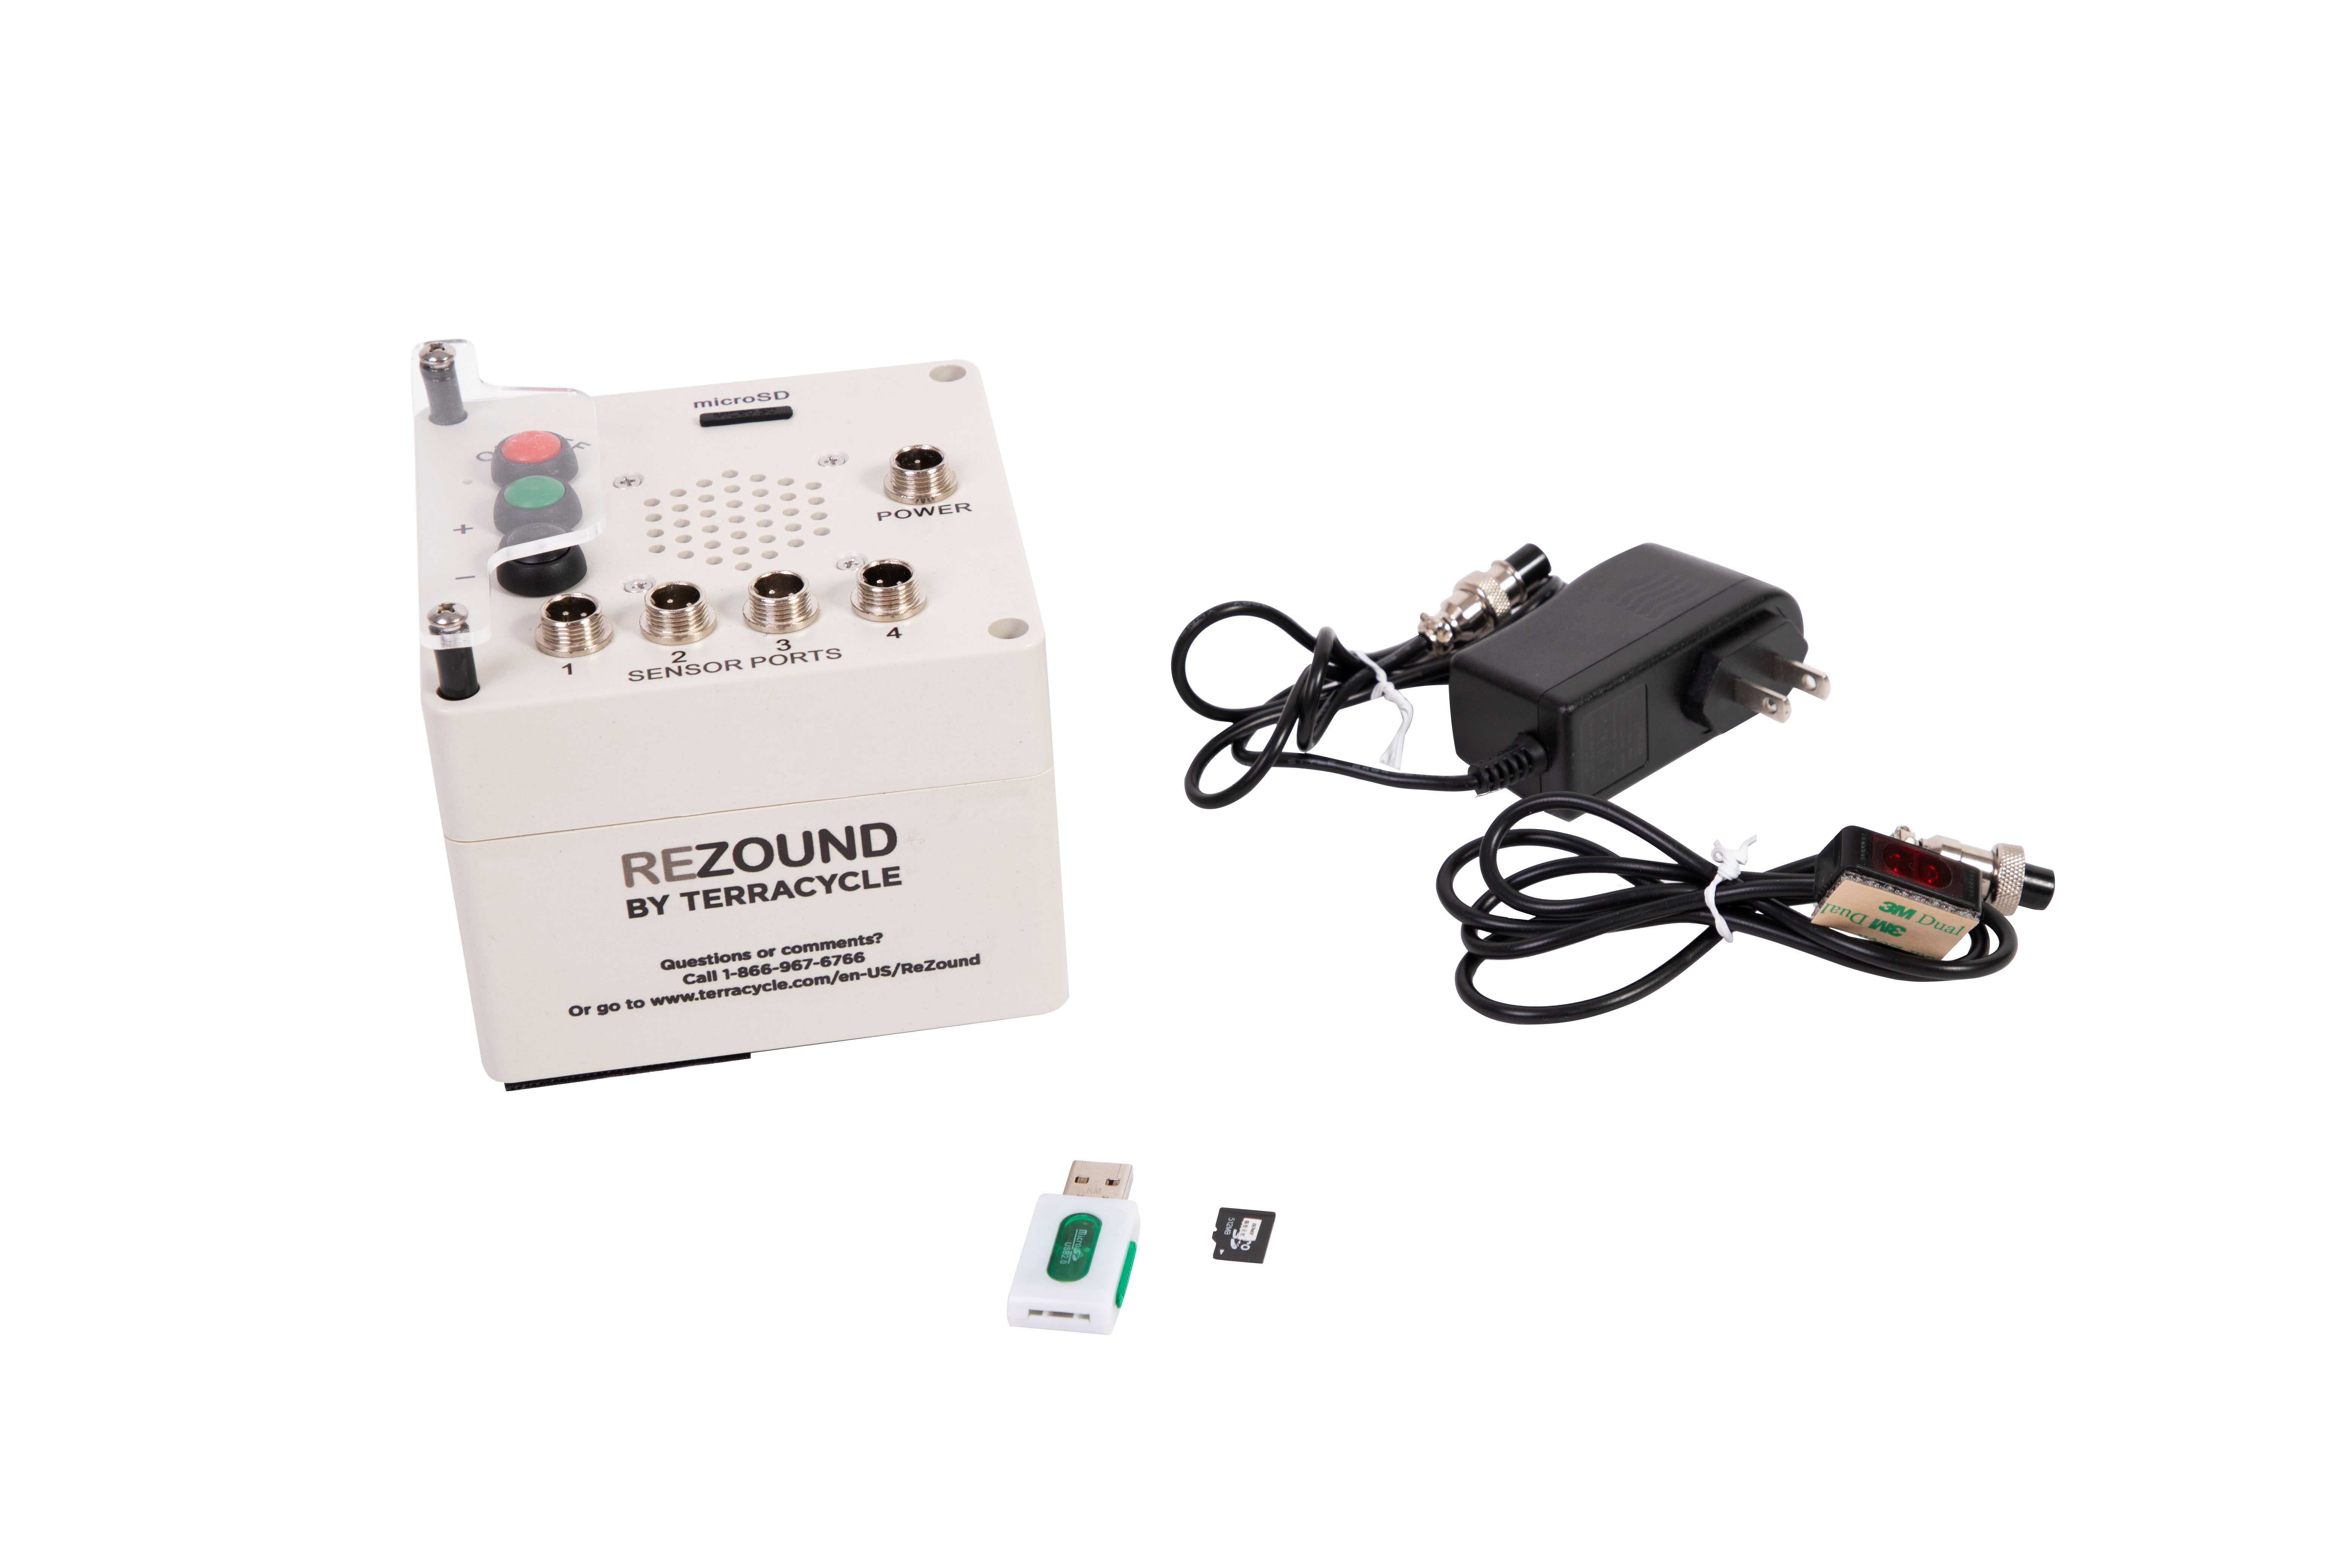 ReZound Machine equipped with: Pre-recorded sound packs, AC Charger, Two Sensors, MicroSD Card, and reader Mounting adhesives